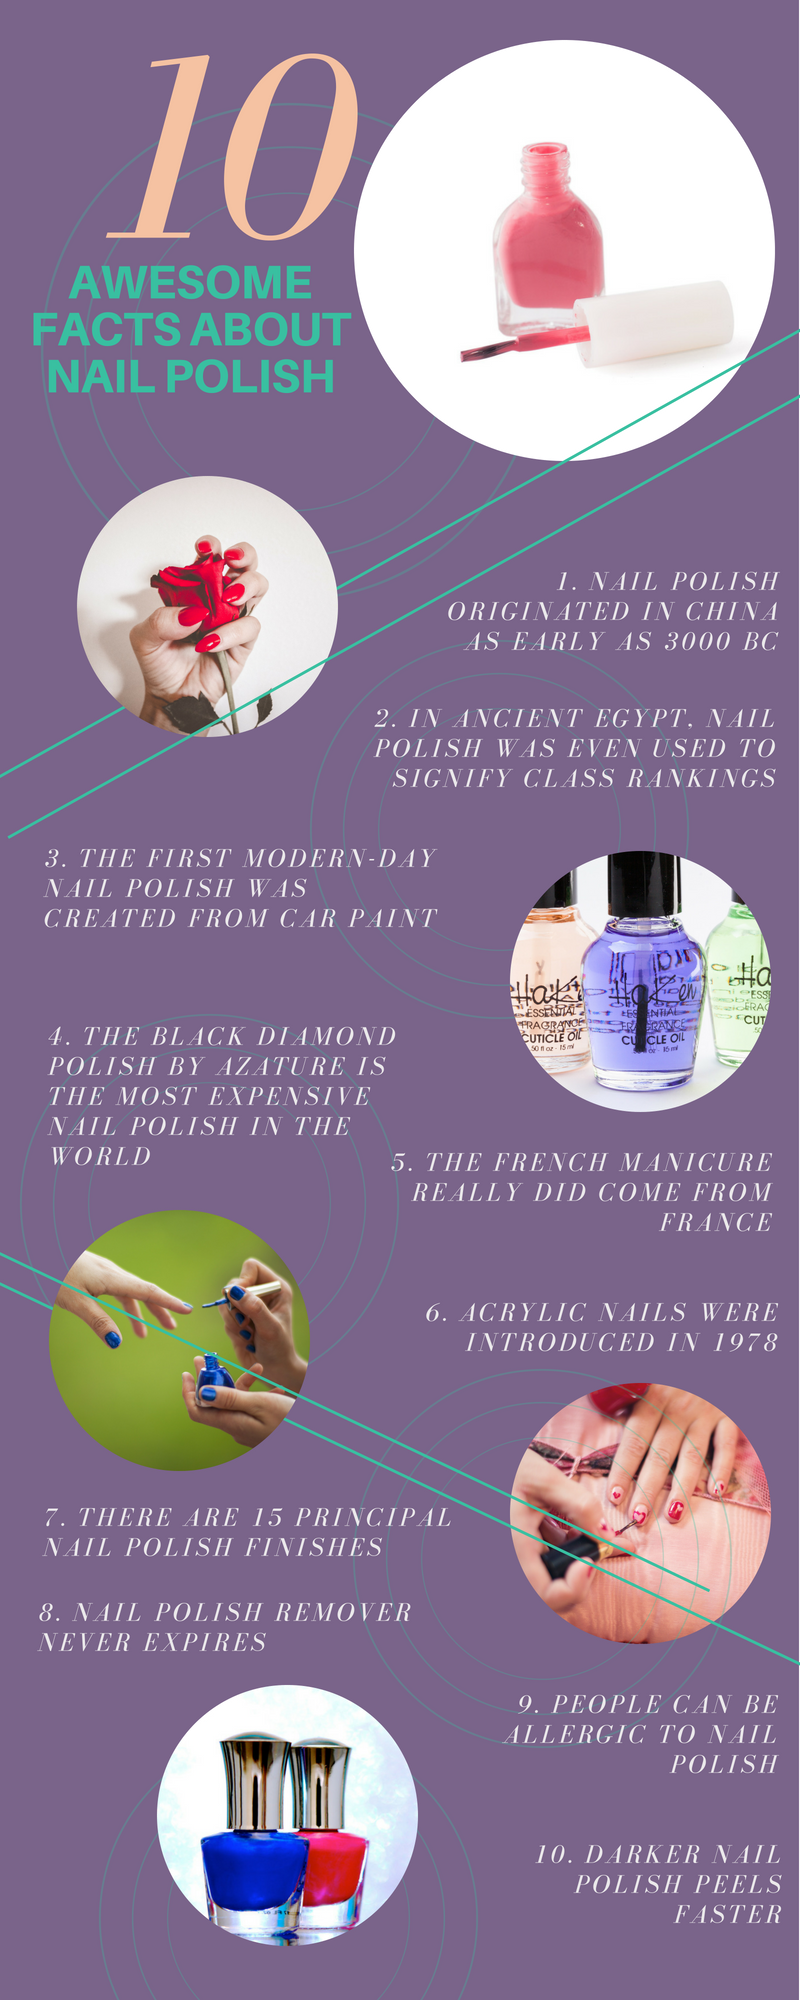 10 AWESOME FACTS ABOUT NAIL POLISH - ICE MAGI   Awesome facts